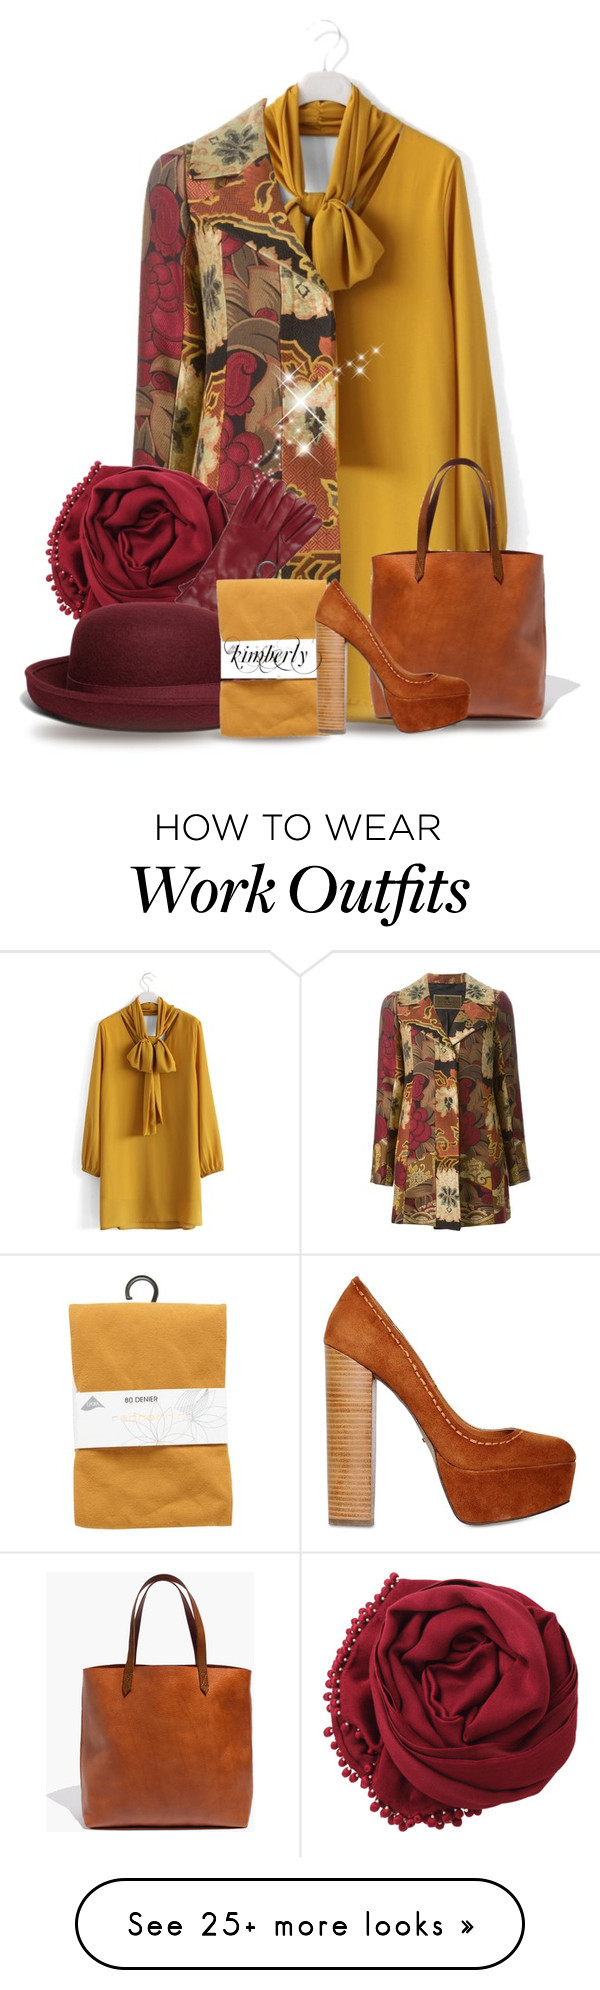 """Fall Workday"" by cavell on Polyvore featuring moda, Chicwish, Madewell, Etro, Bajra, Roeckl, Brooks Brothers, Red Herring y Carvela Kurt Geiger"